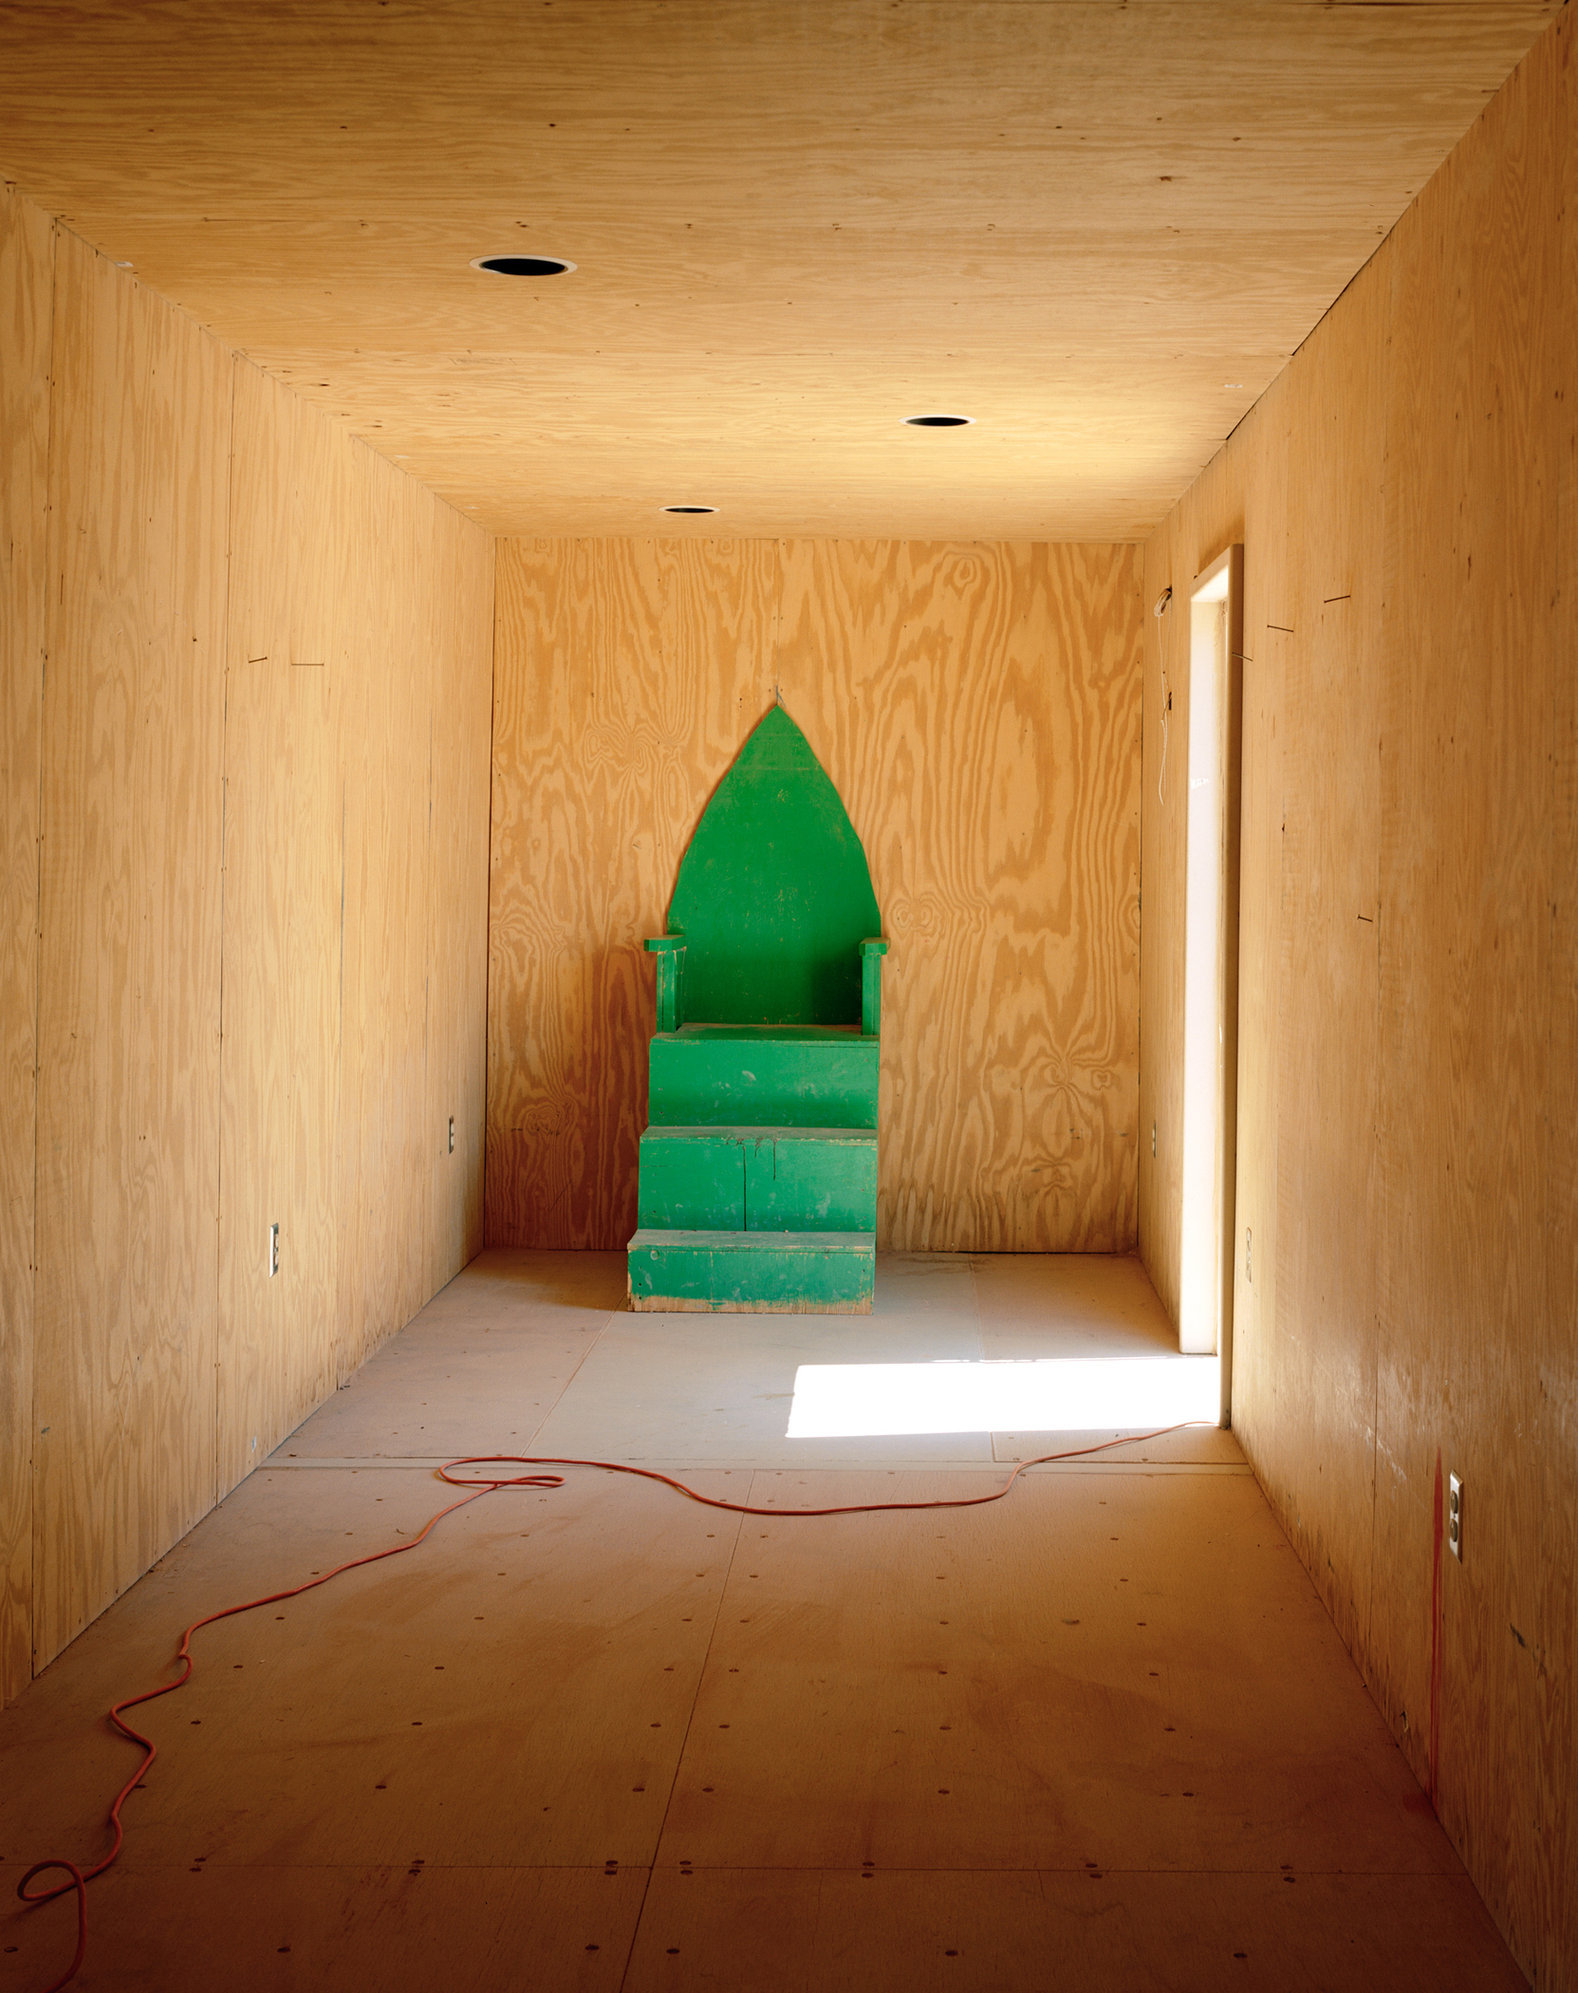 17_Beckett_Shia_Green_Chair.jpg